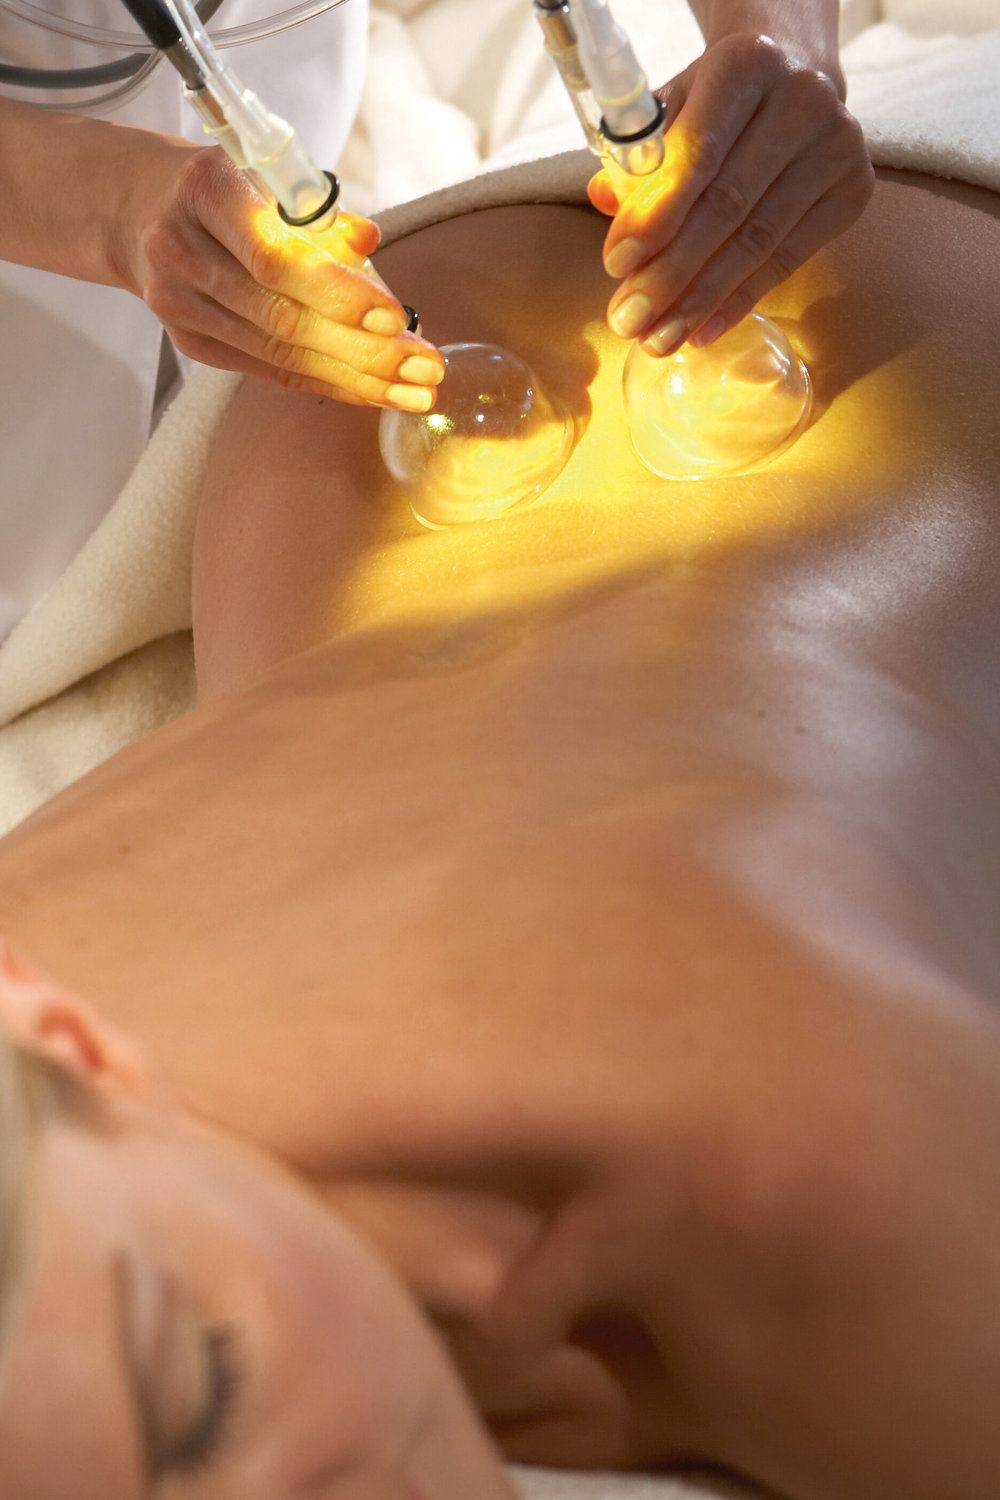 You hear the gentle humming of the pump of the drainage machine as you feel the gliding of its glass cups over face or body. Before starting, the technician applies a vegetal-based oil emulsion mixed with a blend of essential oils on the area being treated. The oil facilitates the gliding of the cups on the skin as it also helps maintain an airtight contact of cup against skin. The pumps alternatively suck in and release the skin layers as the cups are guided by the esthetician or massage therapist following prescribed pathways. The essential oil added to the vegetal oil promotes the movement of fluids below the surface of the skin.